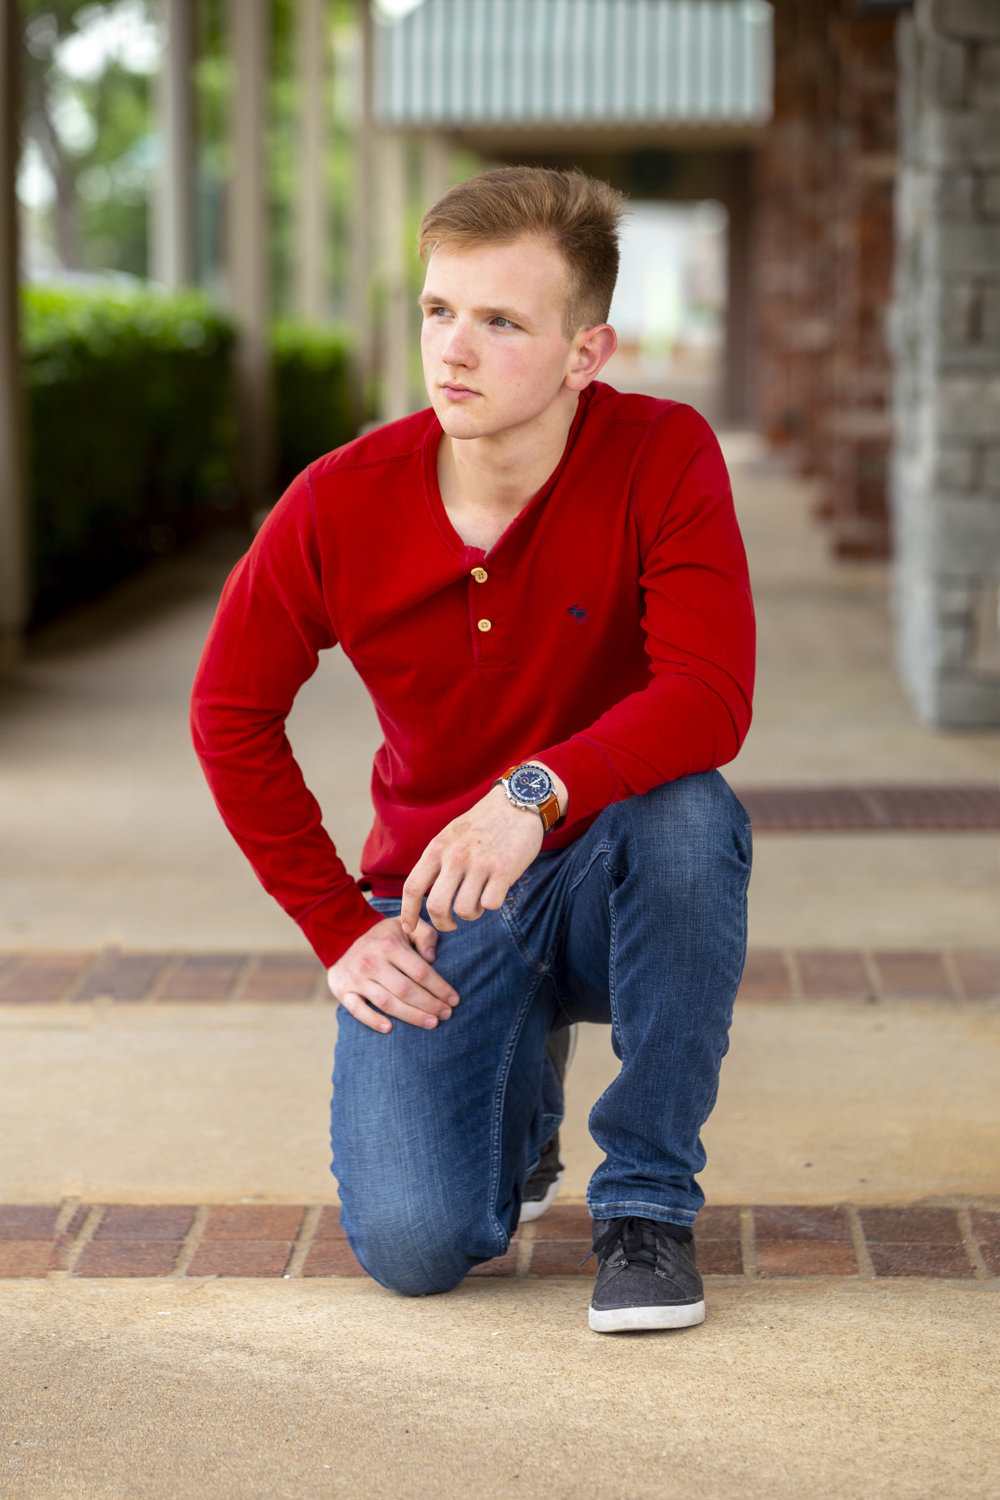 Tulsa-talent-male-models-professional-_7940a.jpg